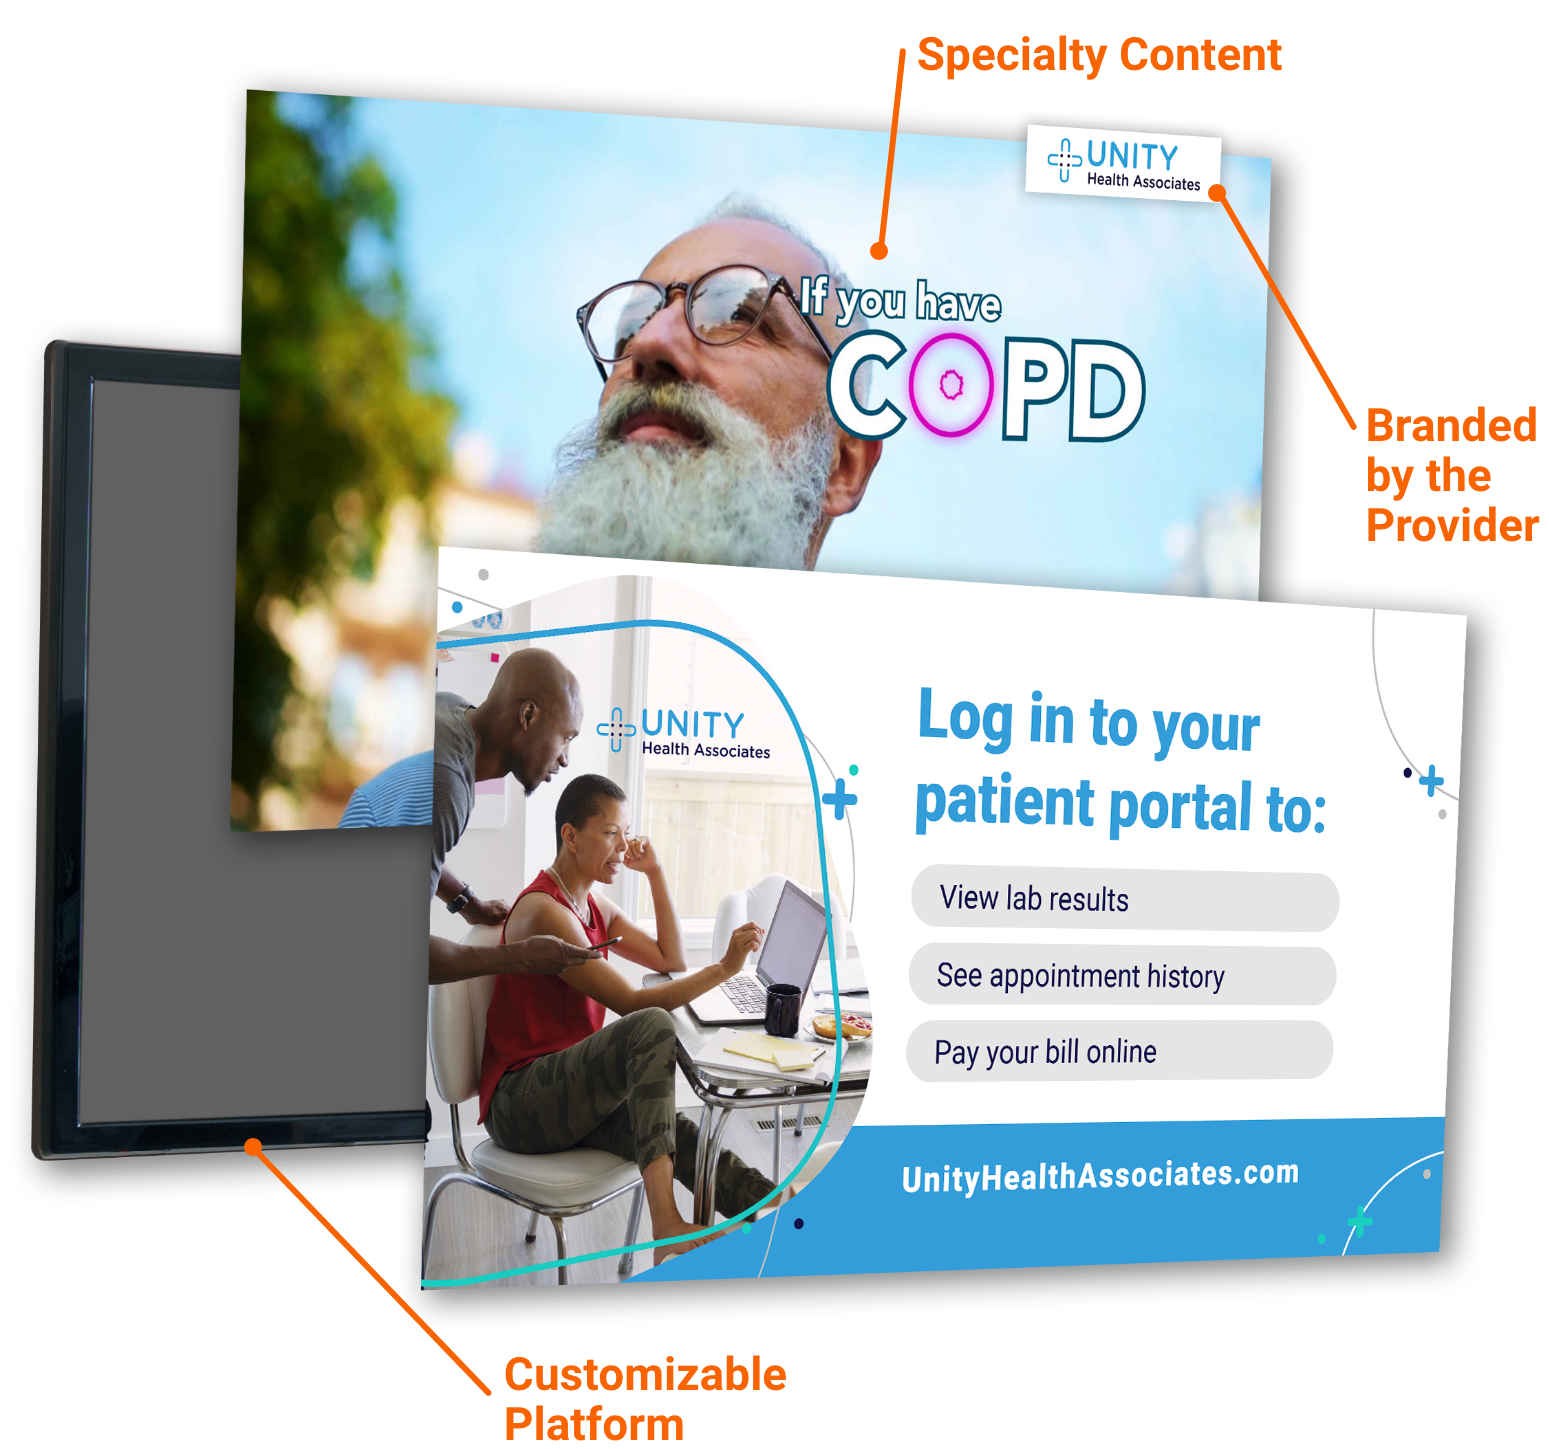 Digital waiting room signs showing specialty content about COPD, a custom patient portal message and provider branding.